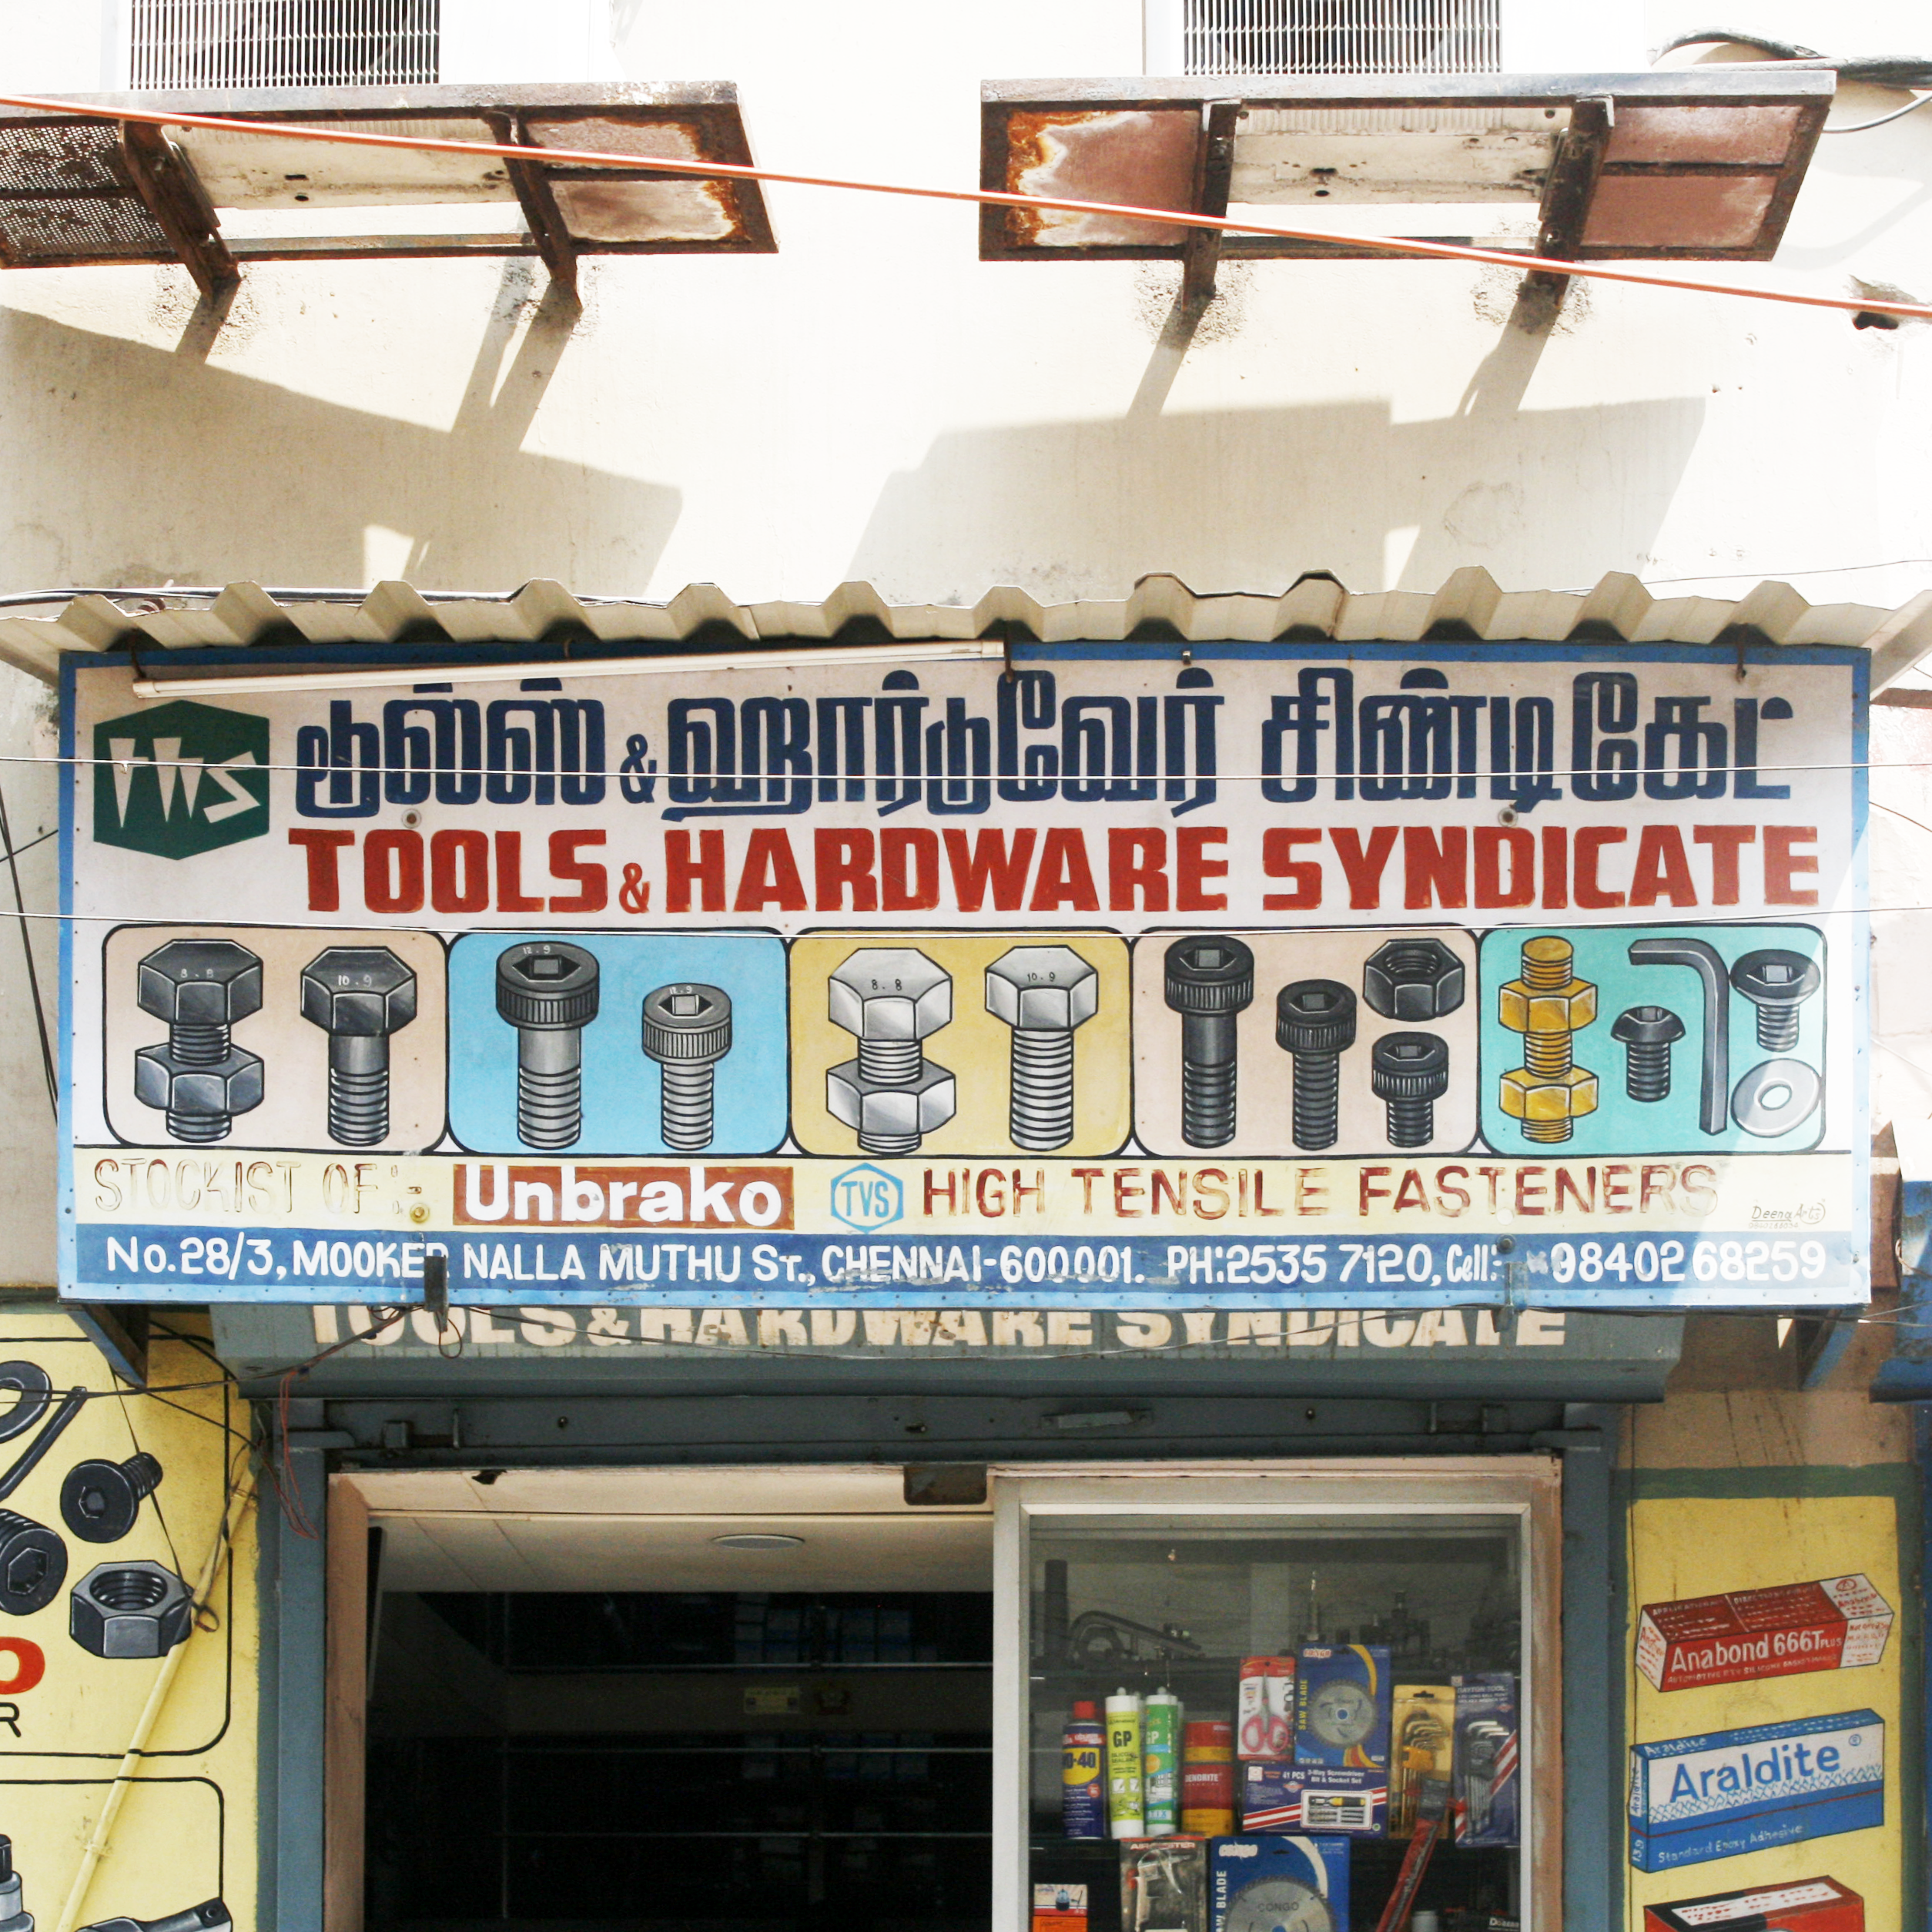 Tools & Hardware Syndicate